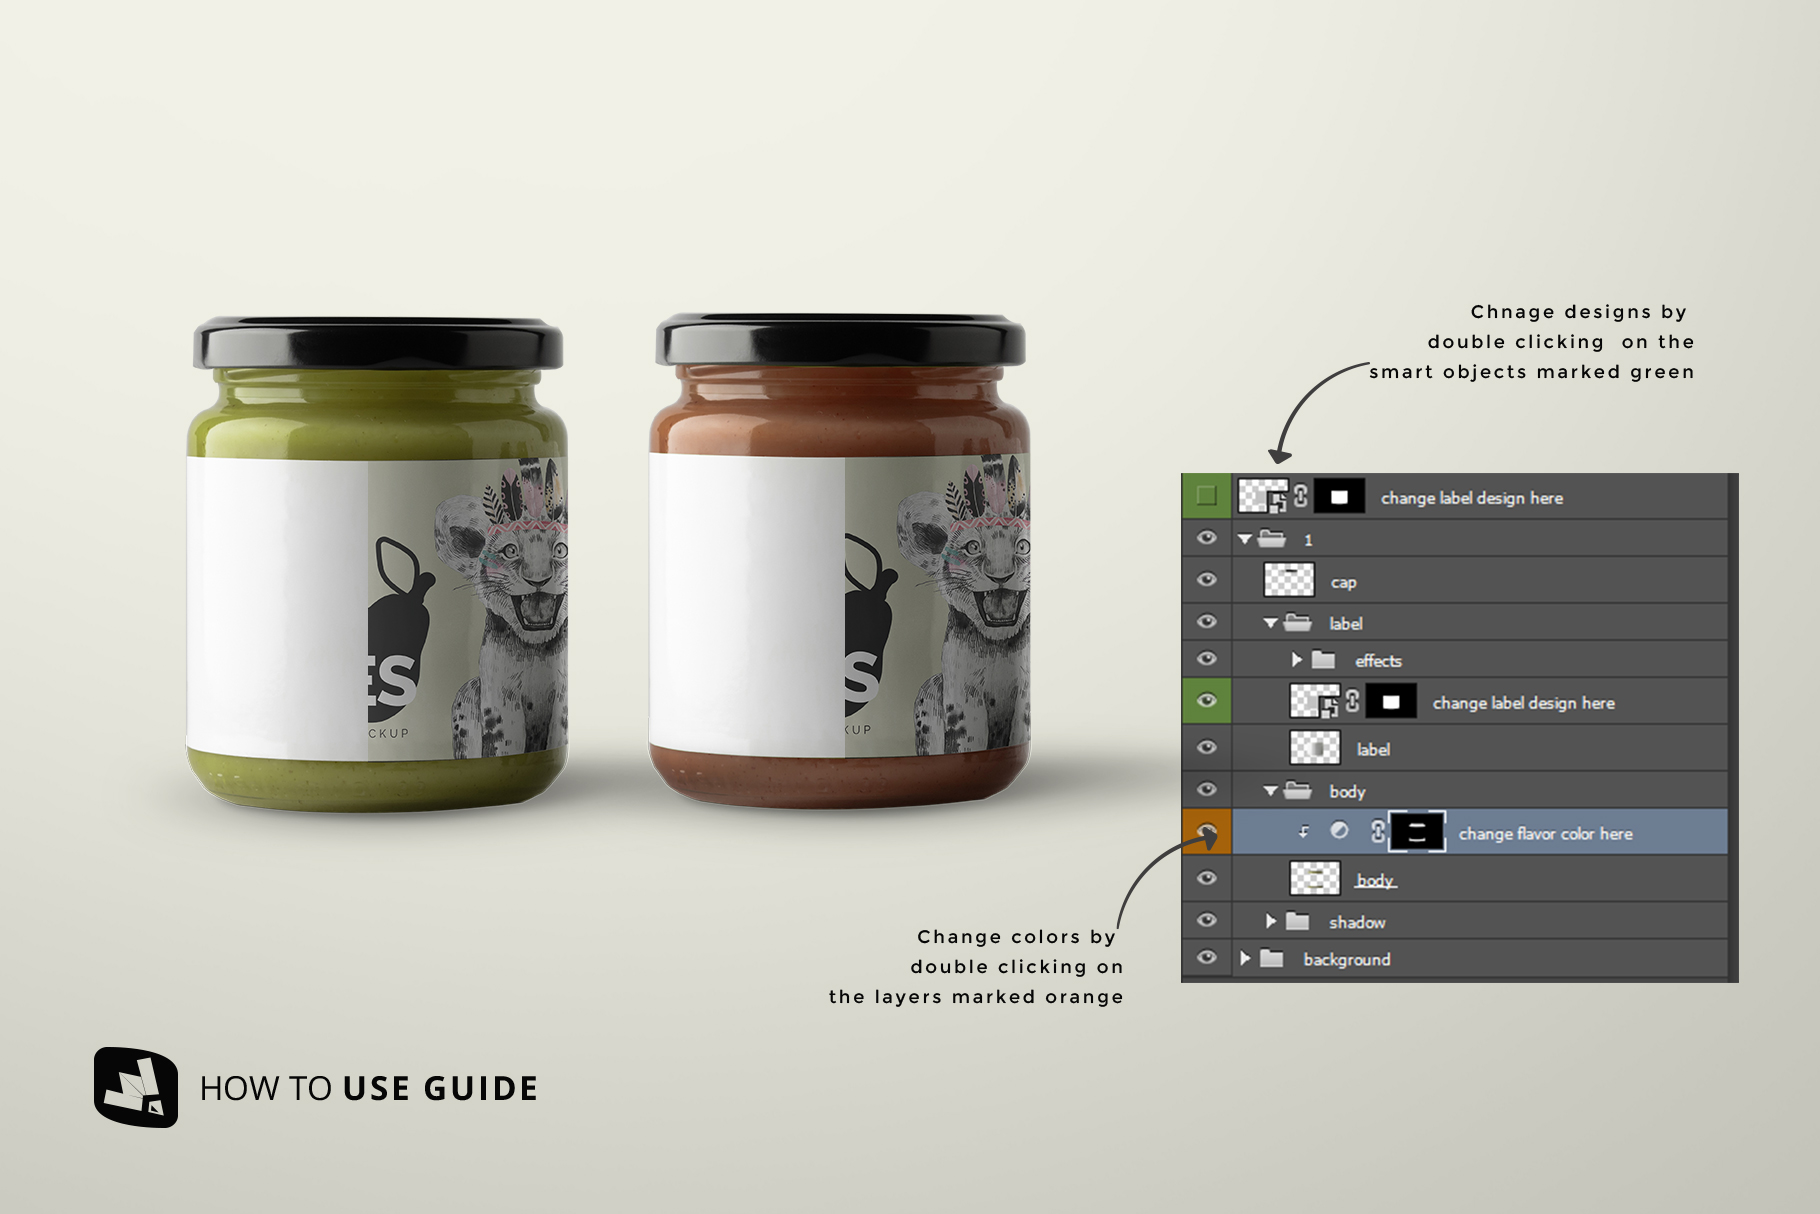 how to use guide of the organic baby food packaging mockup